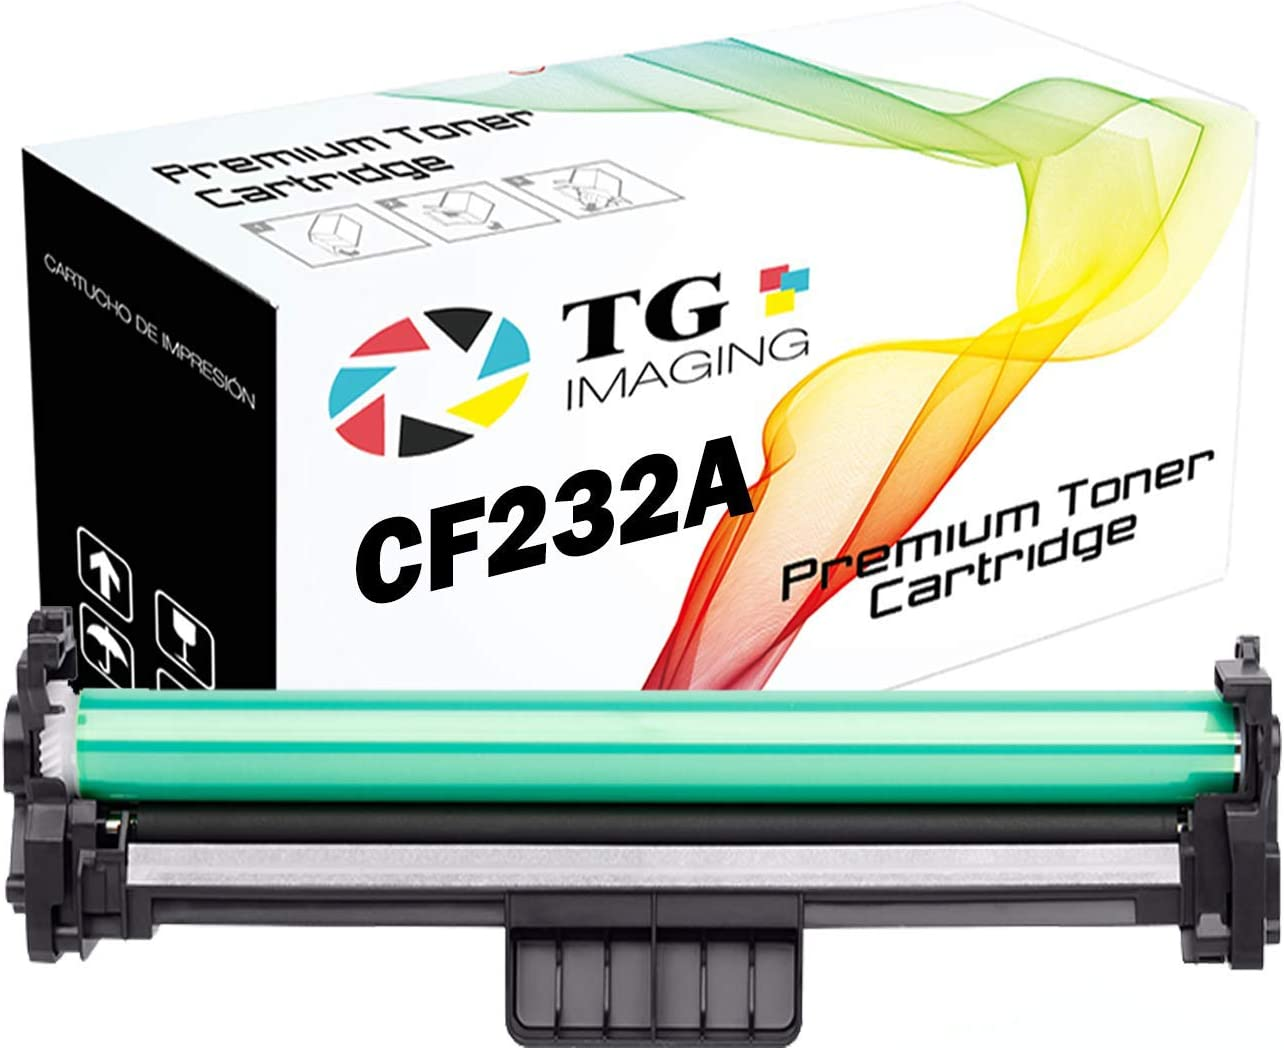 1 Pack TG Imaging | 1xDrum | Compatible HP 32A Imaging Drum Unit CF232A Work for M118DW M148DW M148FDW M203DW M227FDW M227FDN Printer (Drum Unit for HP 30A 30X 94A 94X)